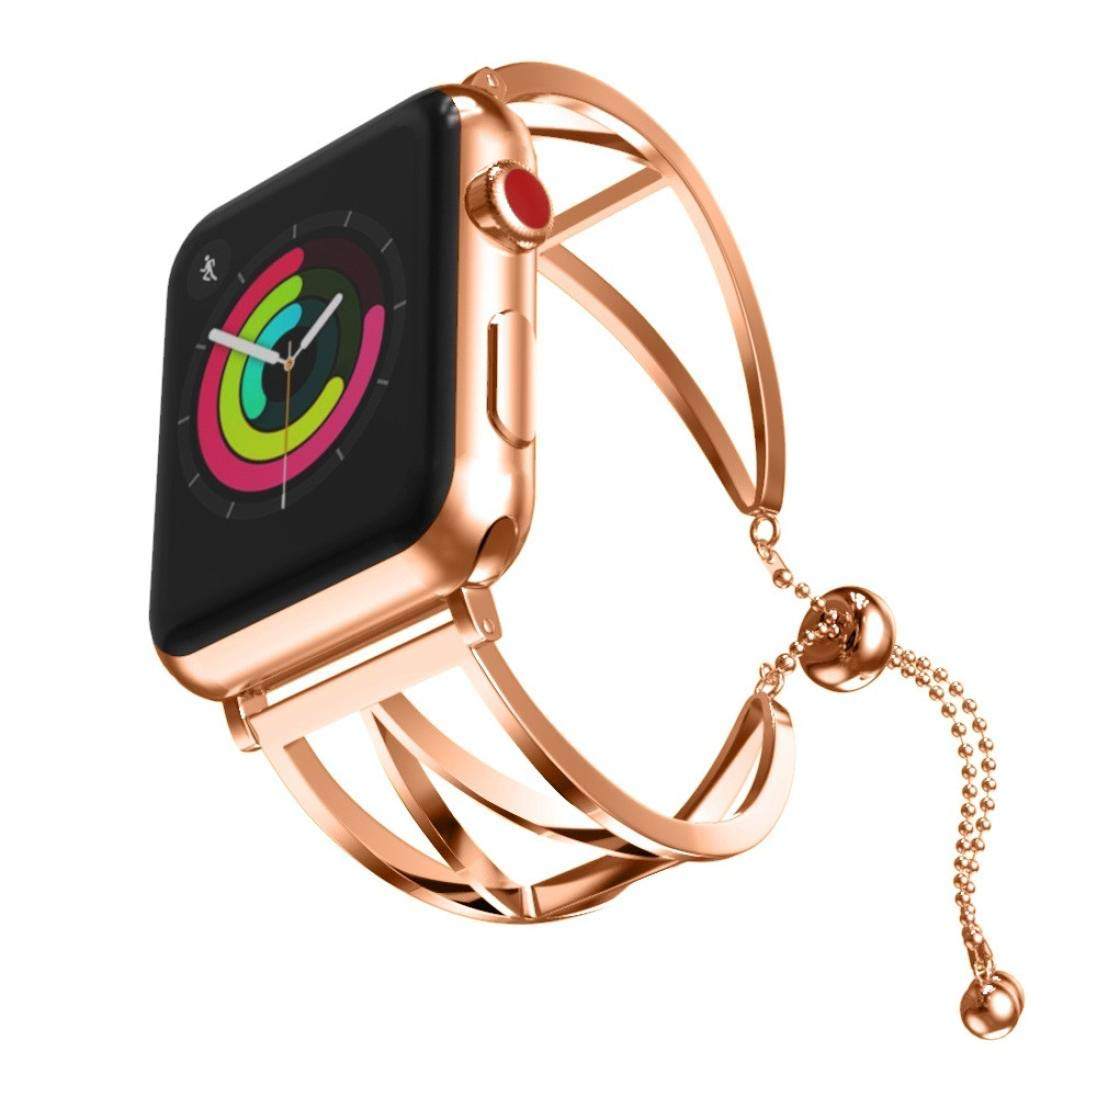 Women Gift,AutumnFall Fashion and Classic Stainless Steel Bracelet Replacement Girls Watch Bands Strap for Apple IWatch Series 1/2/3 38mm (Rose Gold)